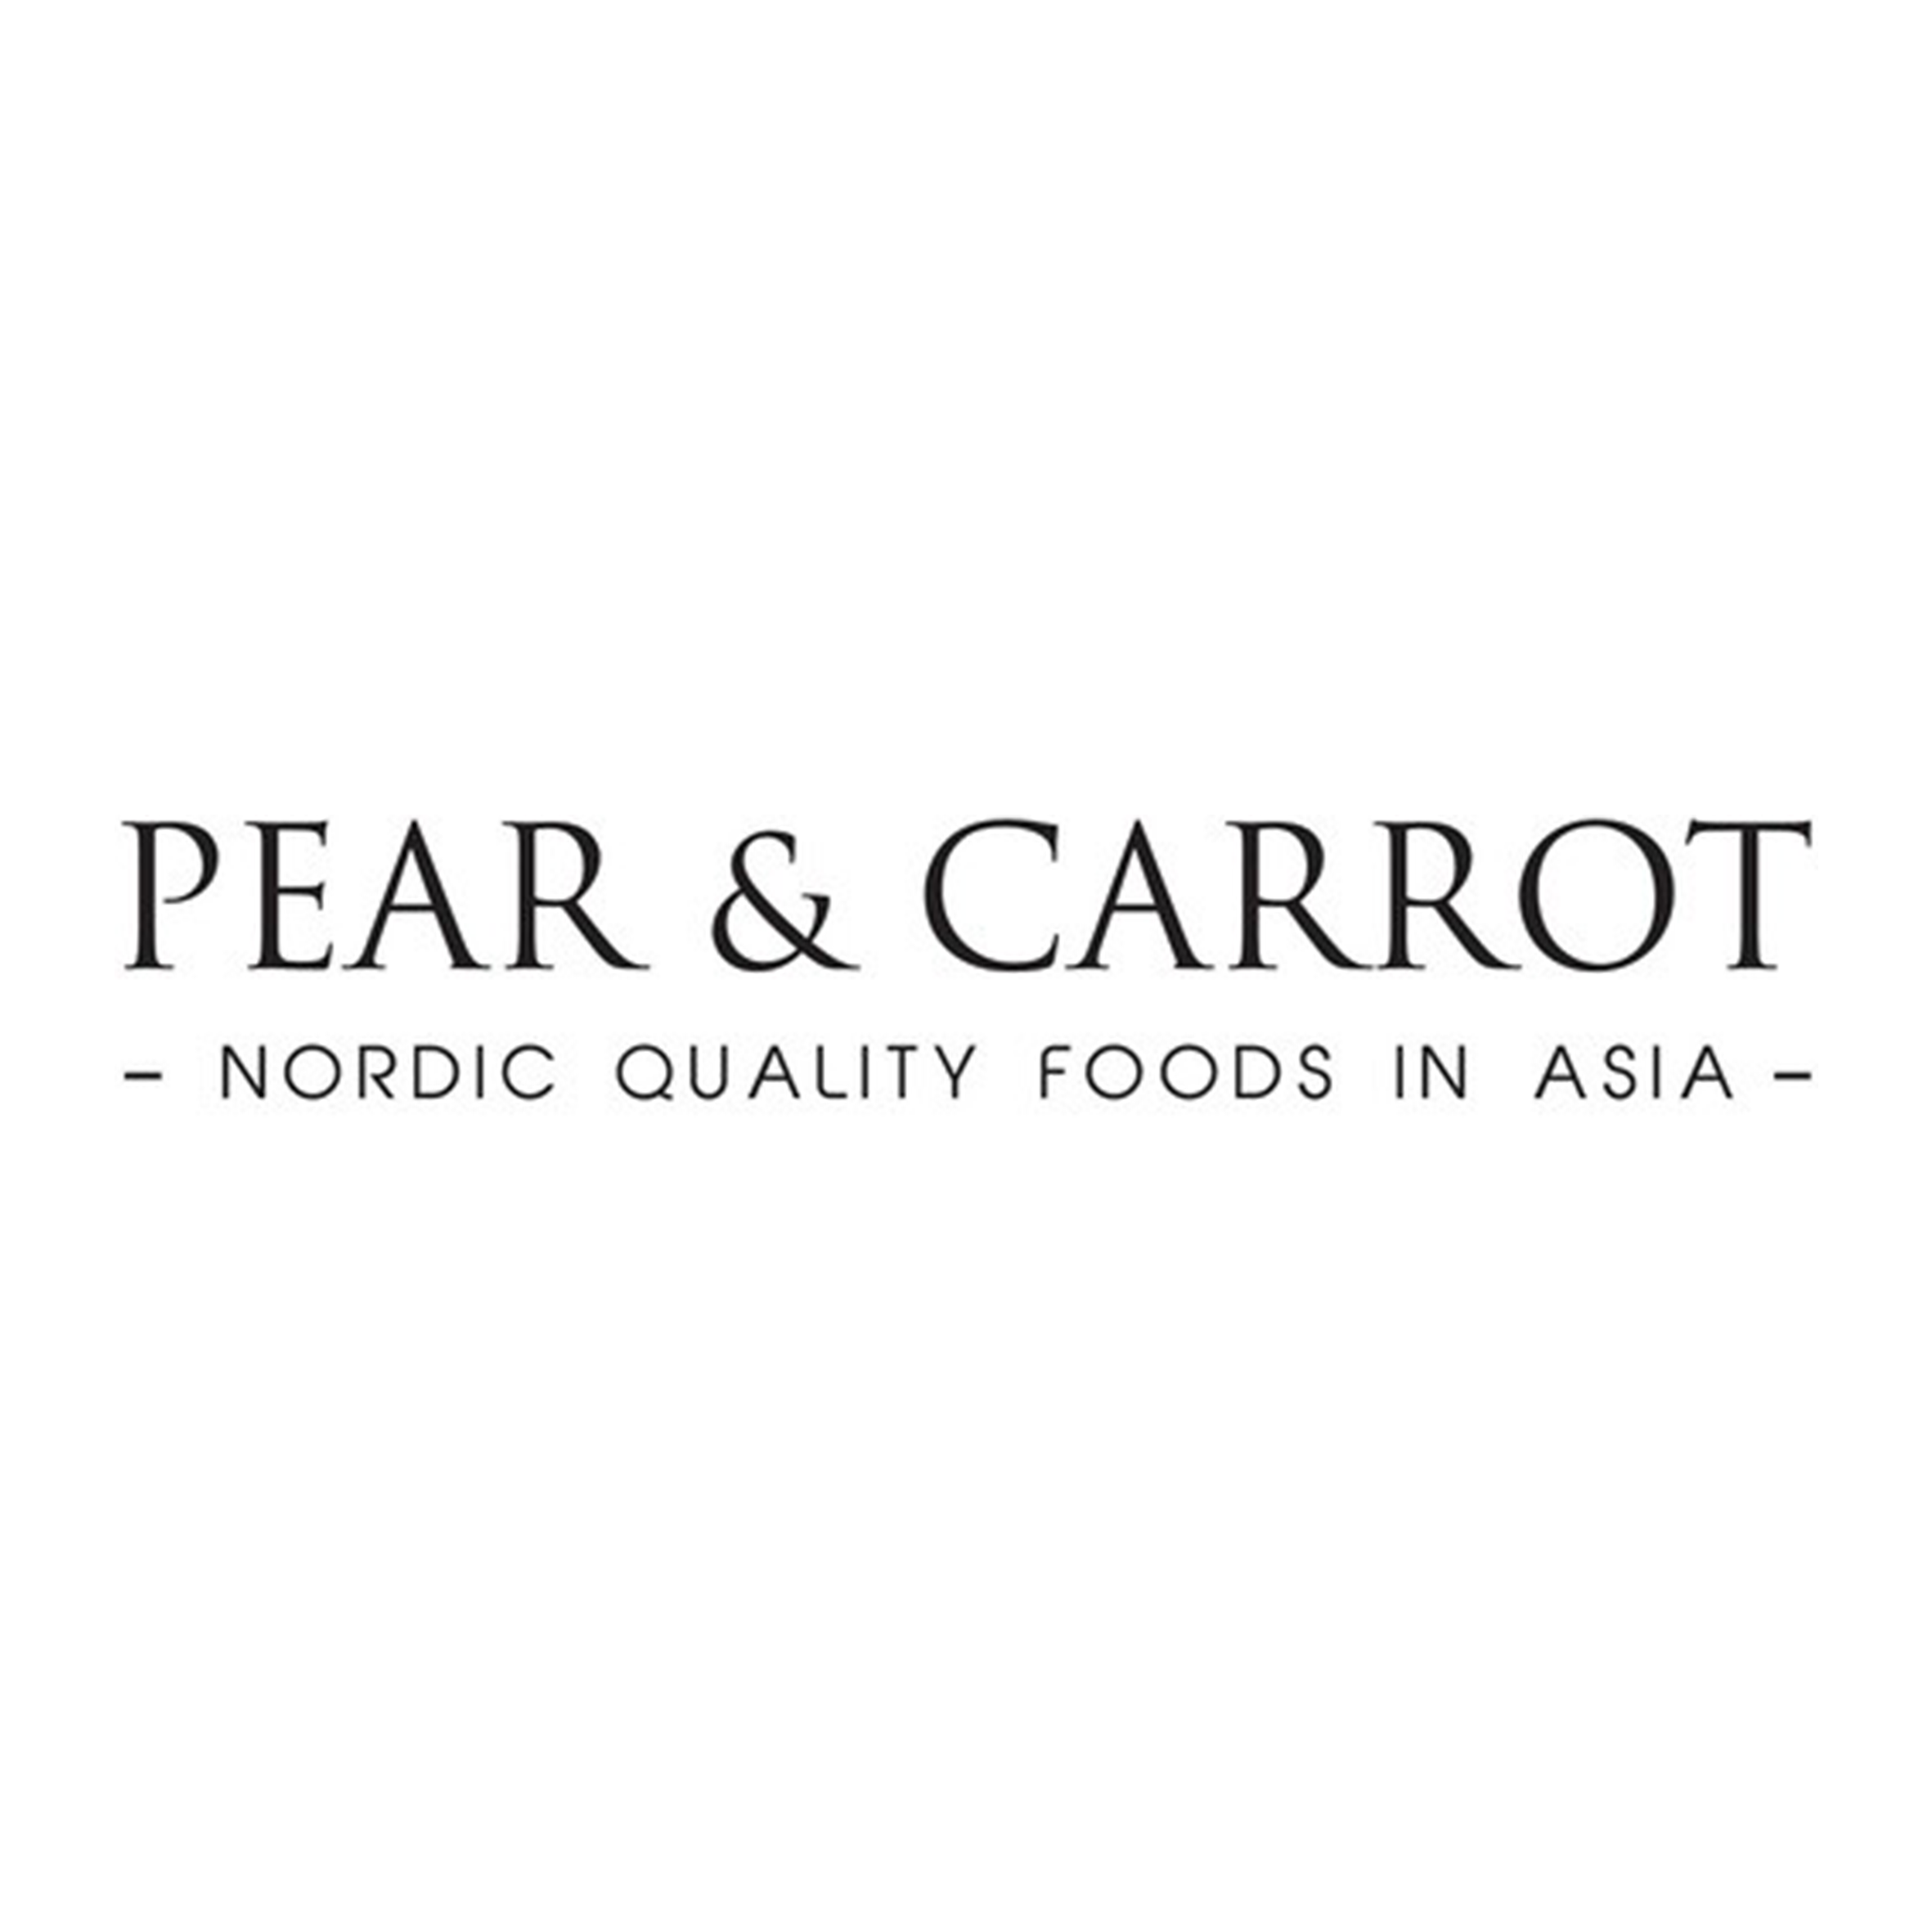 Pear and Carrot Ltd